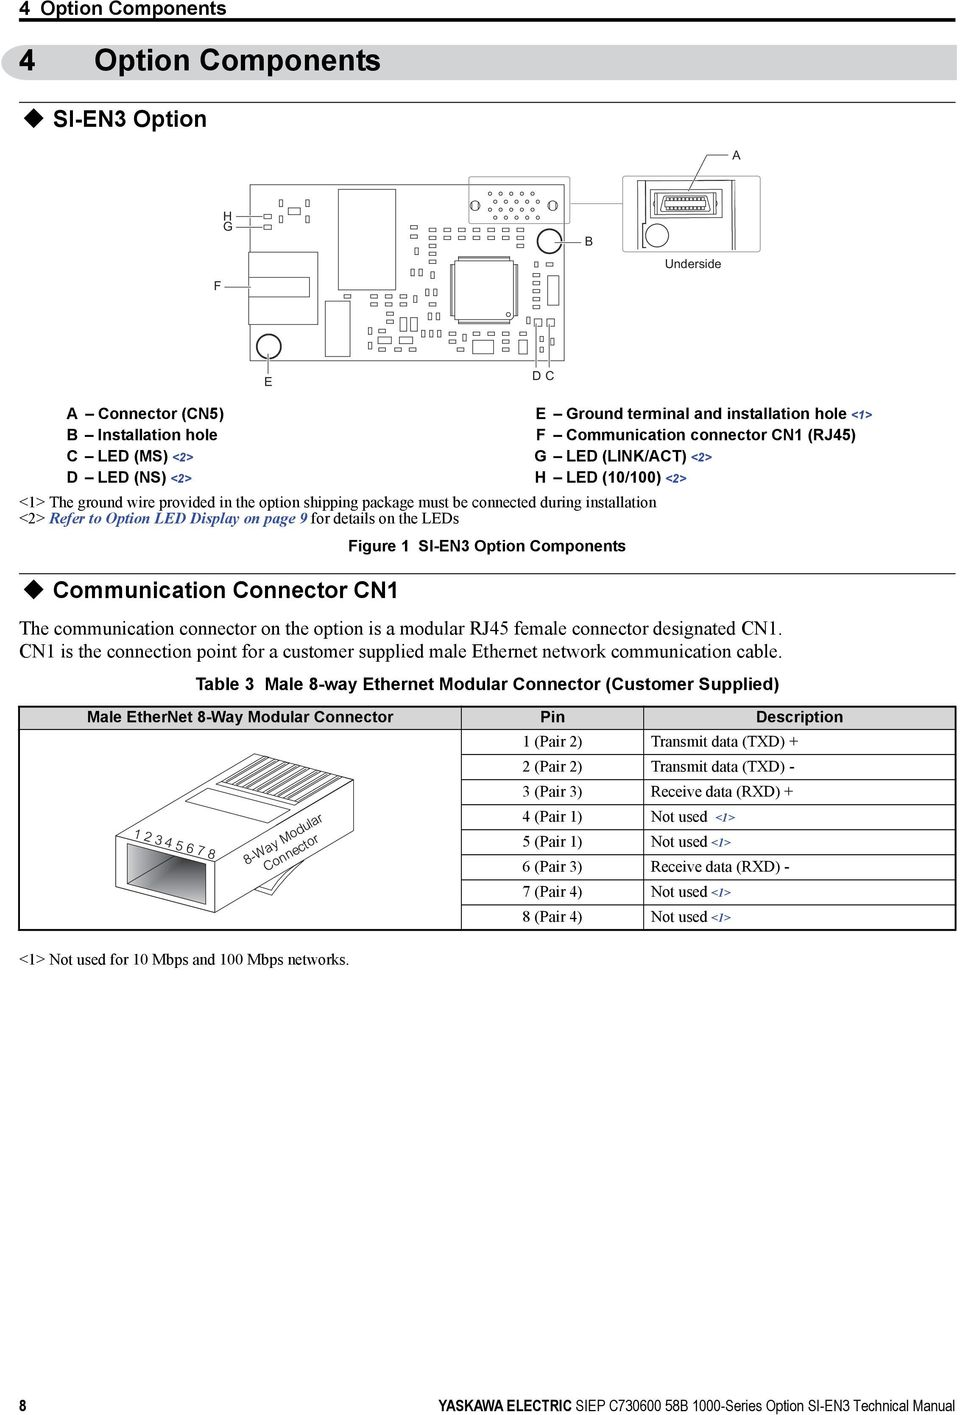 Yaskawa Ac Drive 1000 Series Option Ethernet Ip Technical Manual Pdf 100 Mbps Rj45 Wiring Diagram To Led Display On Page 9 For Details The Leds Communication Connector Cn1 Figure